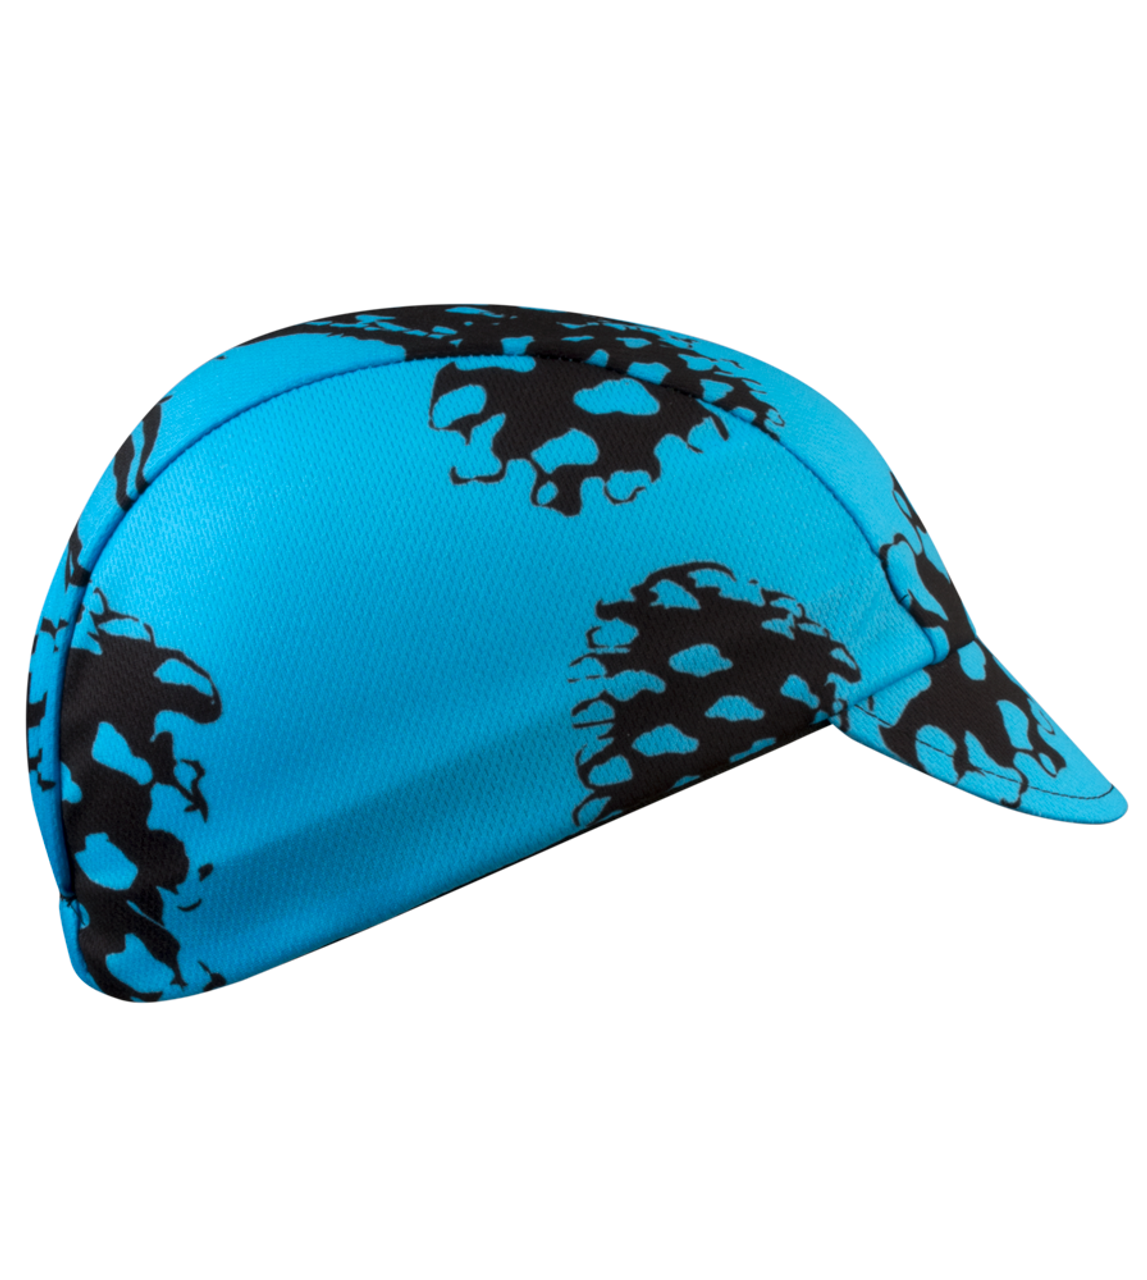 354de11159e Aero Tech Rush Cycling Caps - Pinecones in Blue - Made in USA